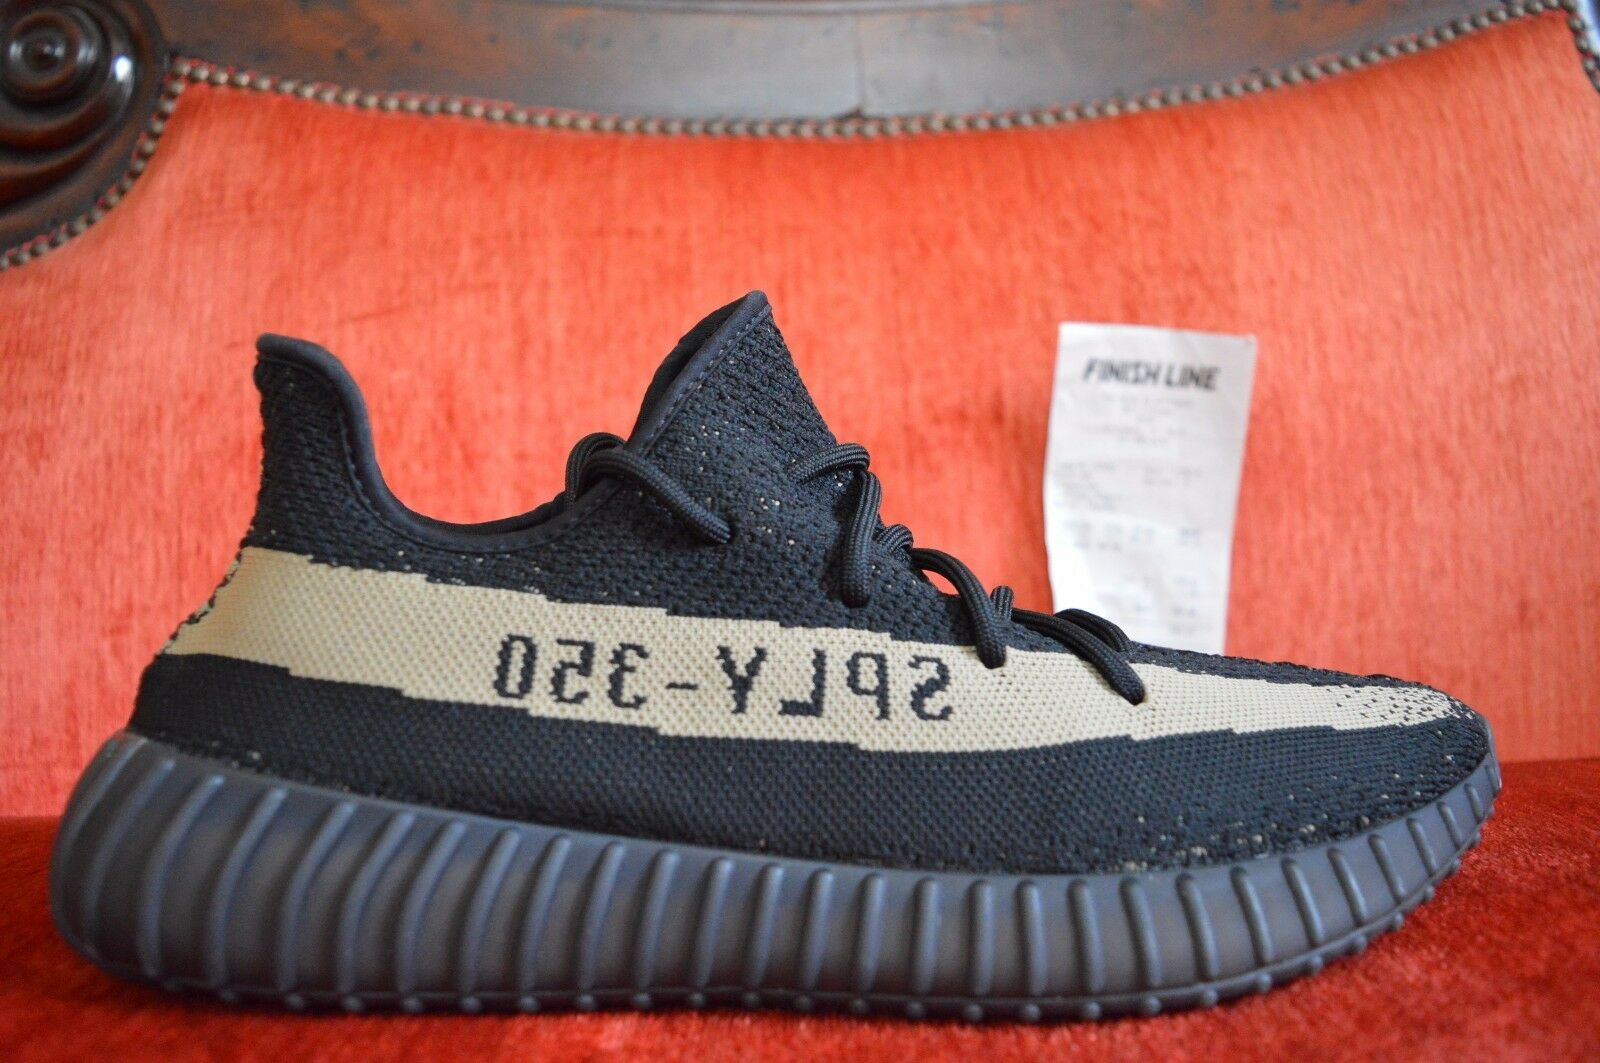 9df0434a52b4f adidas Yeezy 350 V2 Boost SPLY Kanye West Black Green Olive By9611 ...